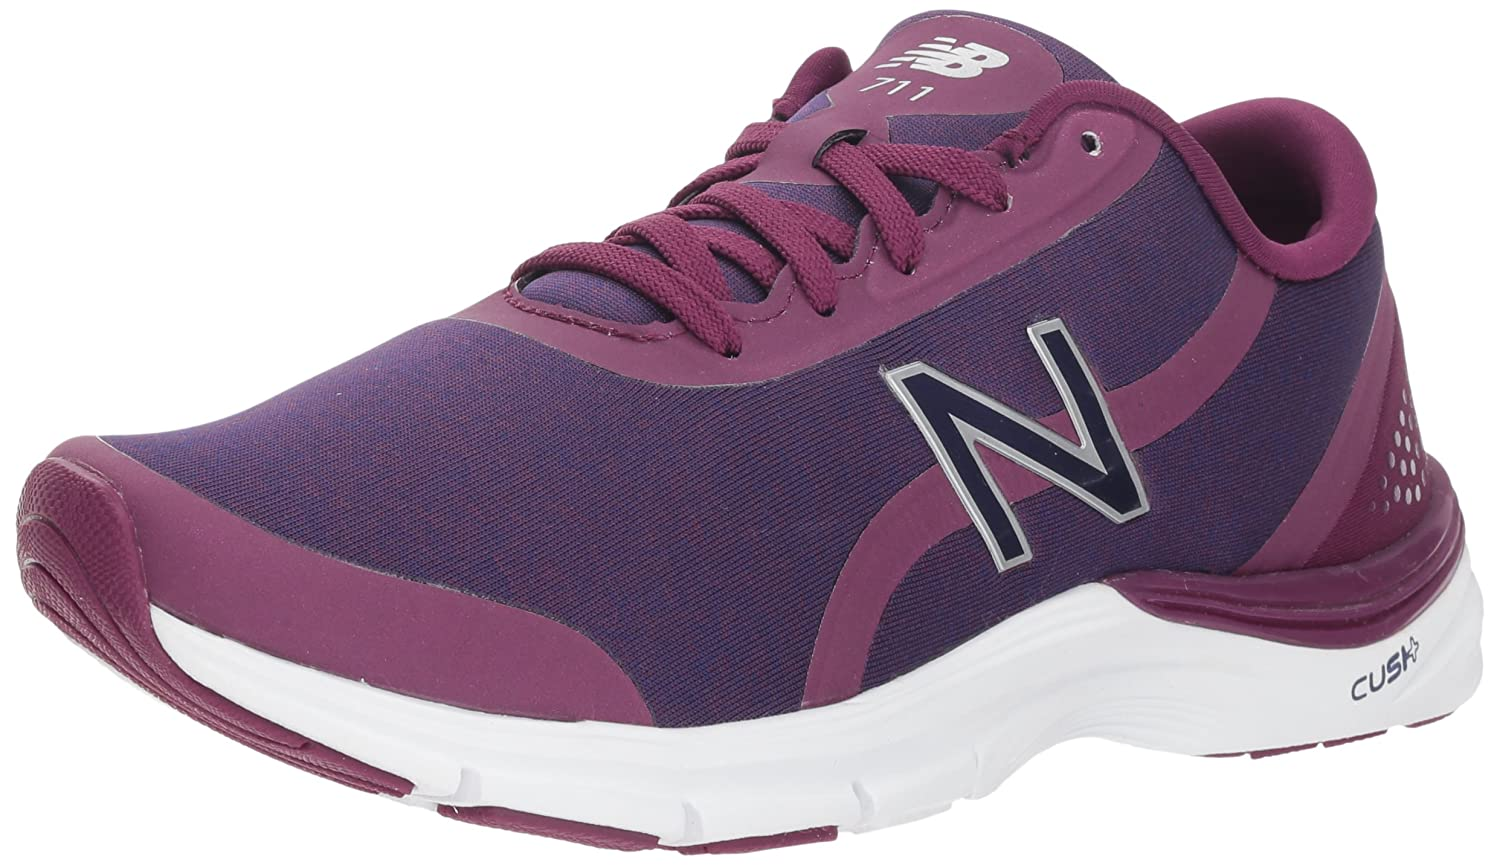 New Balance Women's 711v3 Cush + Cross Trainer B075R755NH 9.5 B(M) US|Magenta